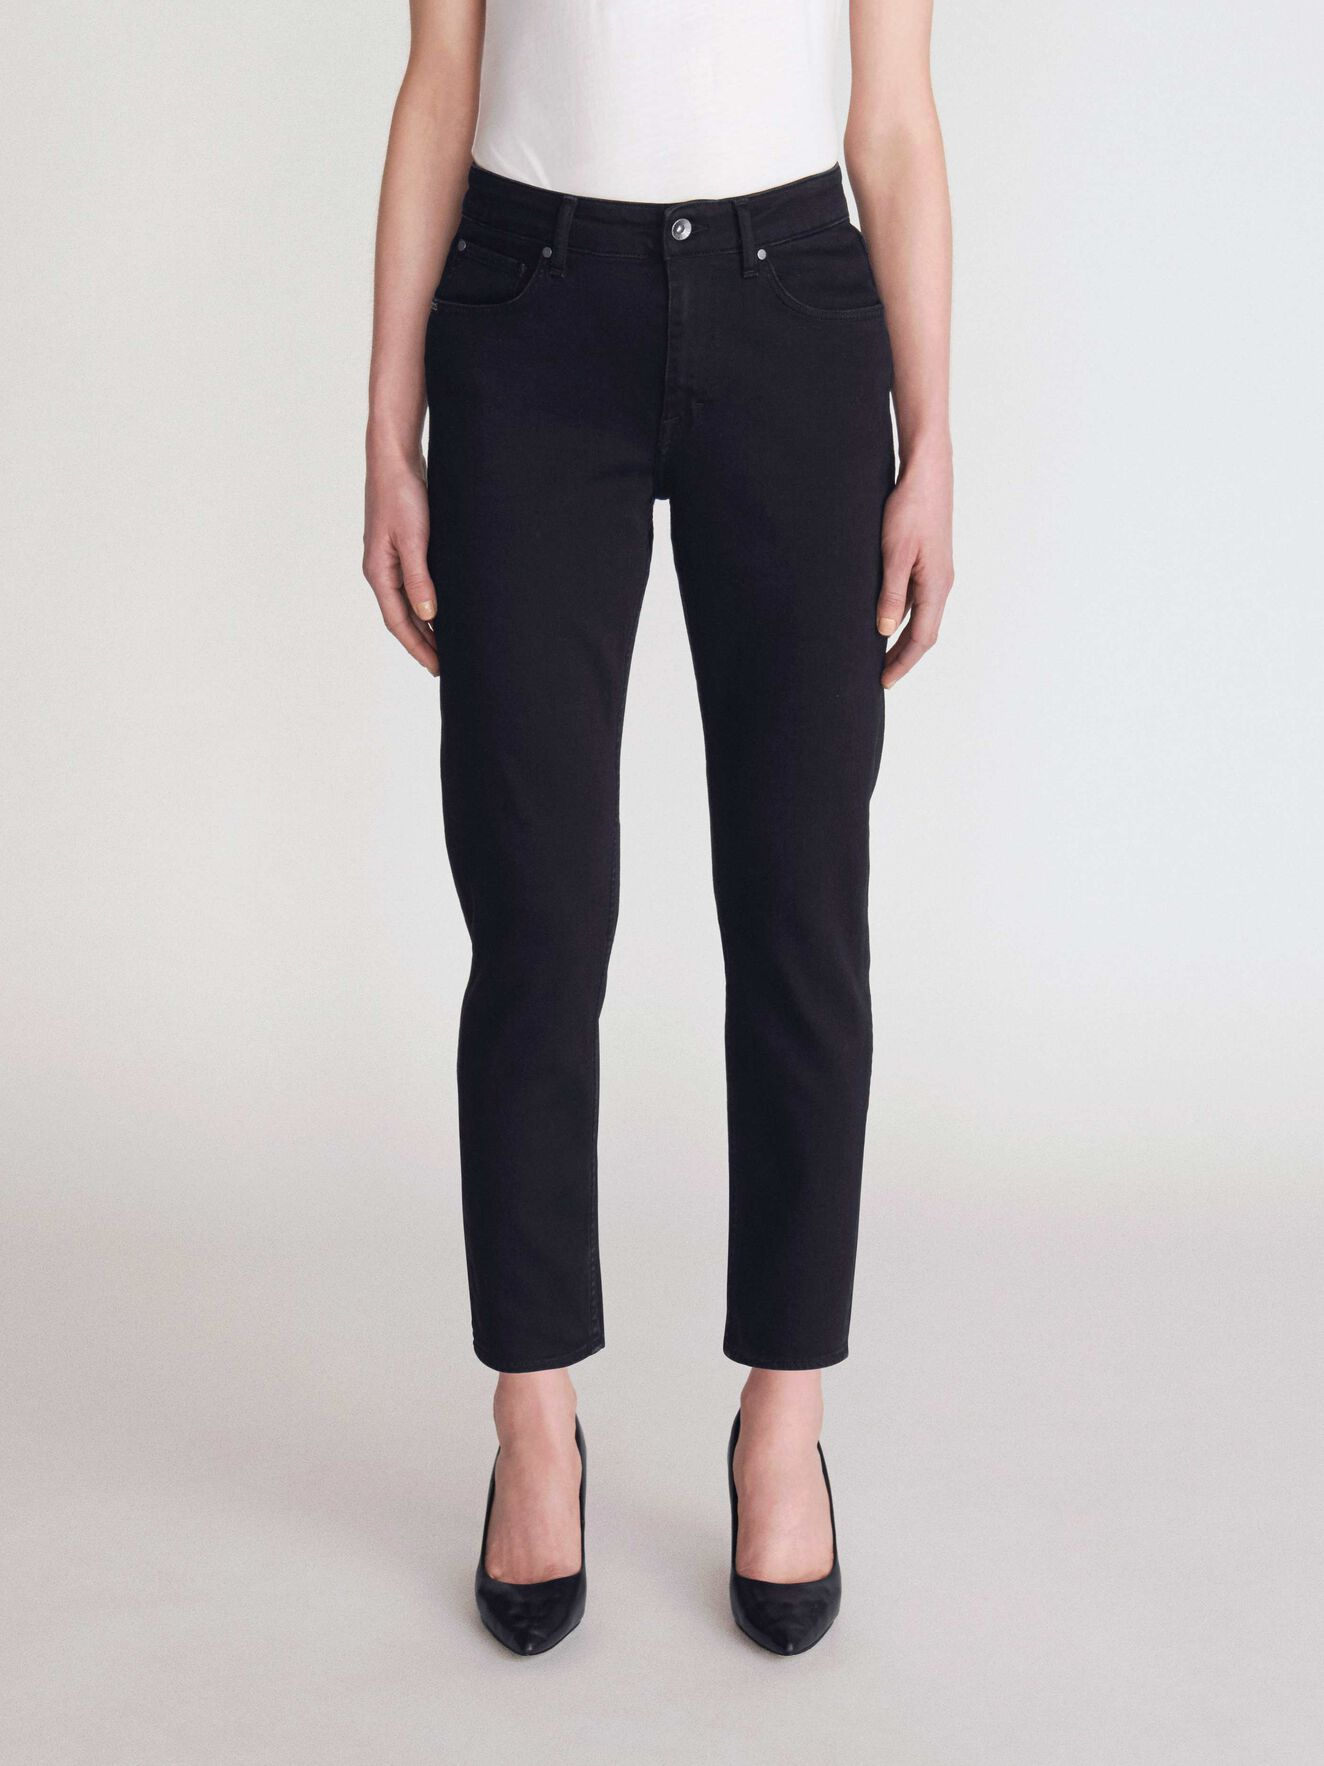 Lea jeans in Black from Tiger of Sweden